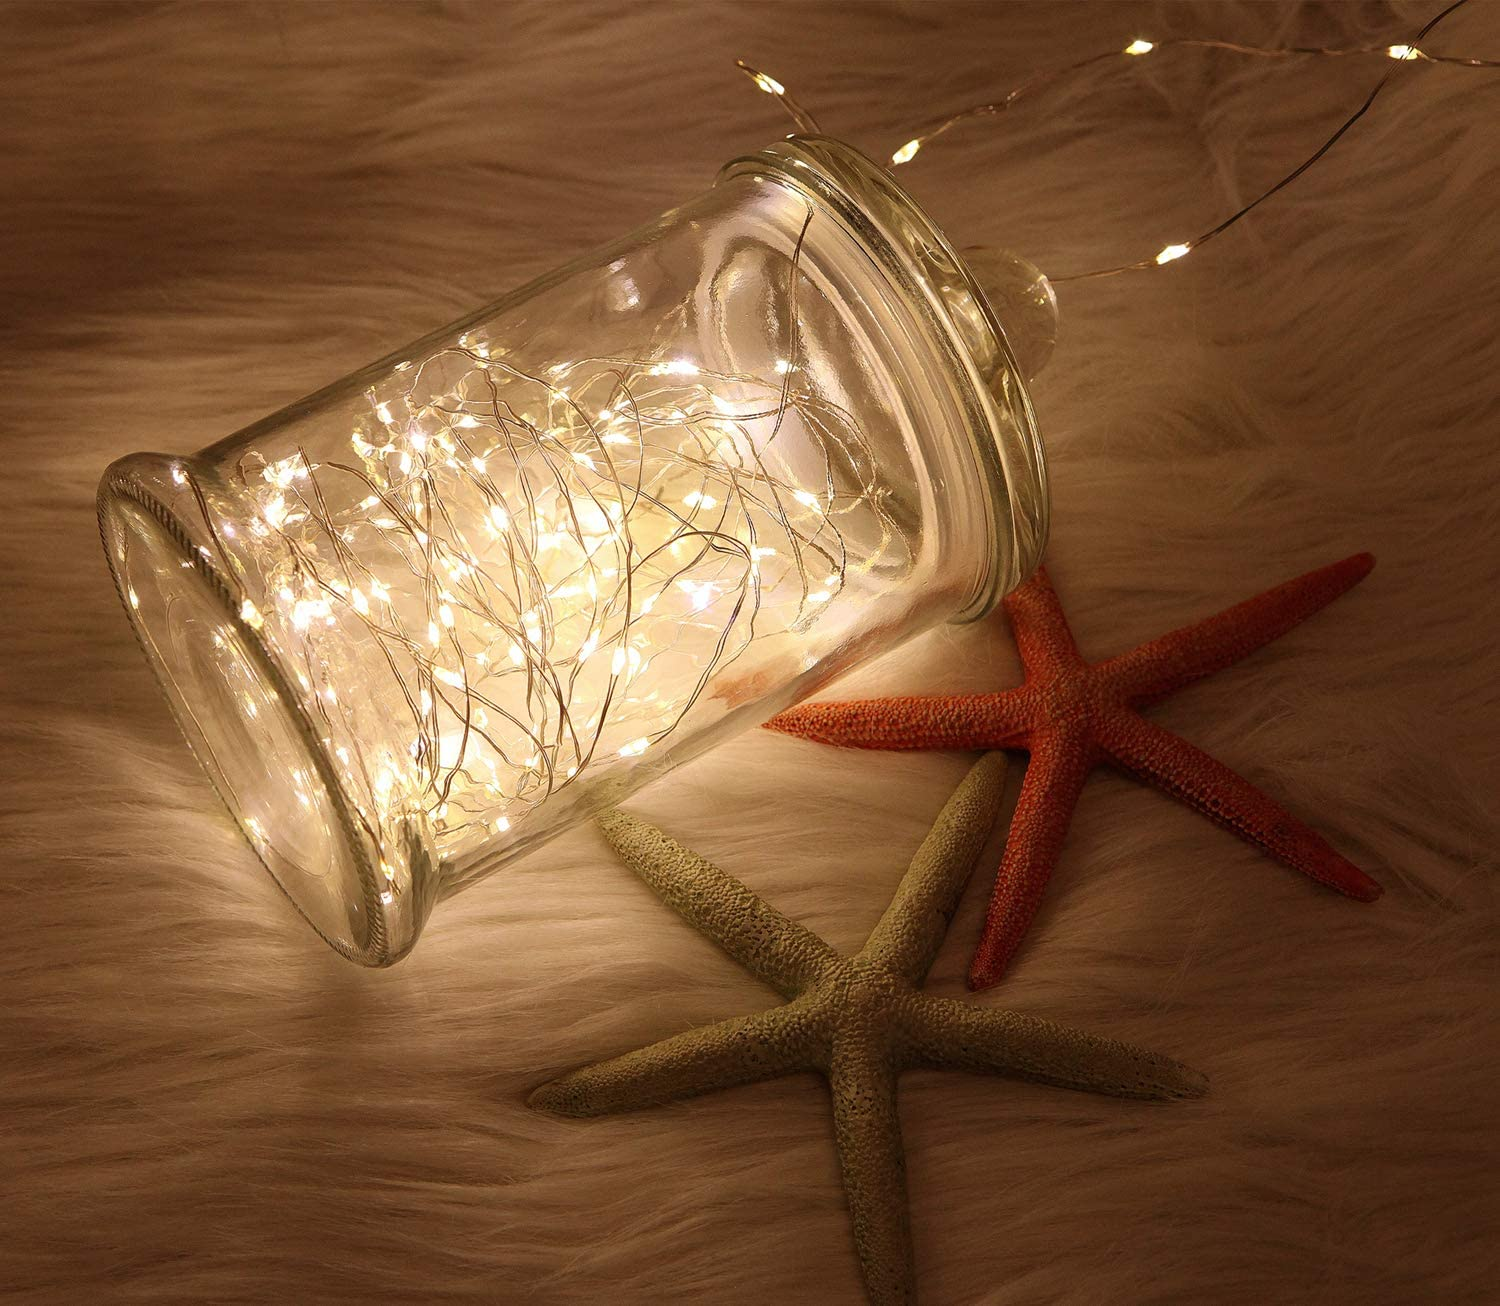 WSgift 2 Pack 20 Feet 60 Warm White Led Fairy Lights Battery Operated with Remote Control Timer Waterproof Silver Copper Wire Twinkle String Lights for Party Bedroom Wedding Christmas Decorations